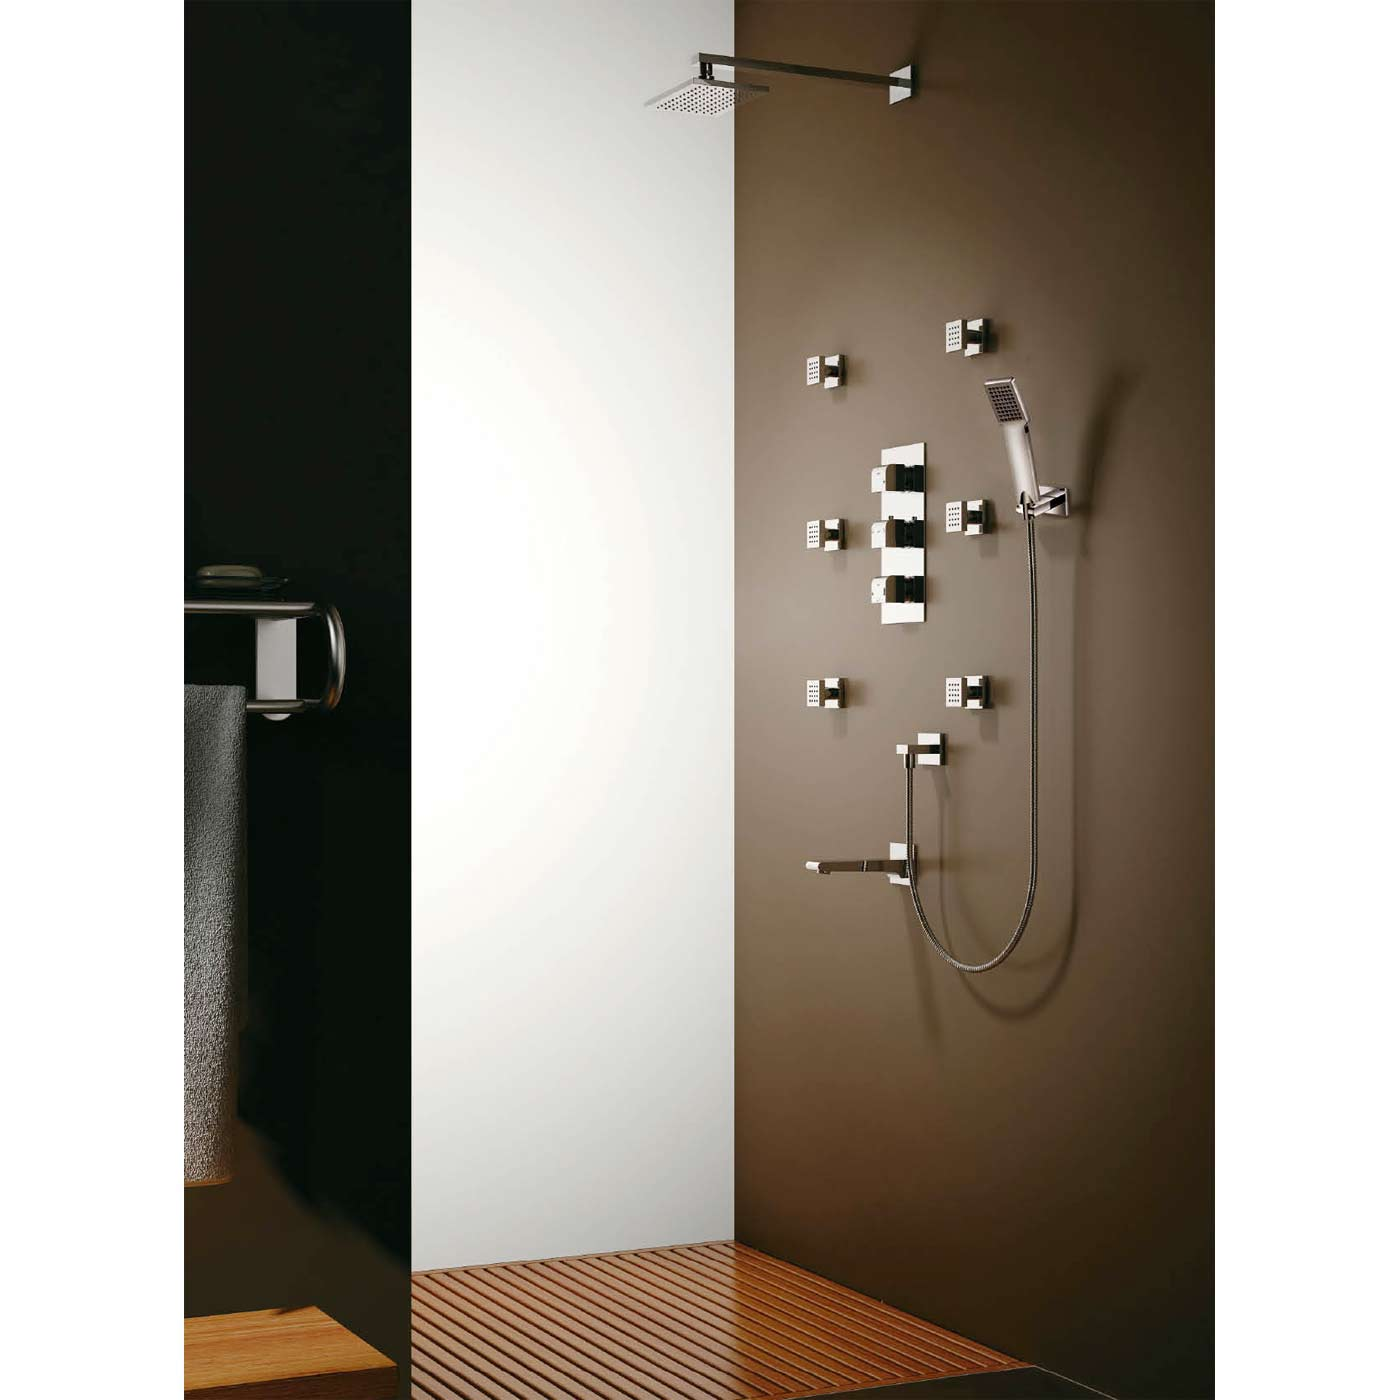 Shower Faucet With Body Jets | Migrant Resource Network